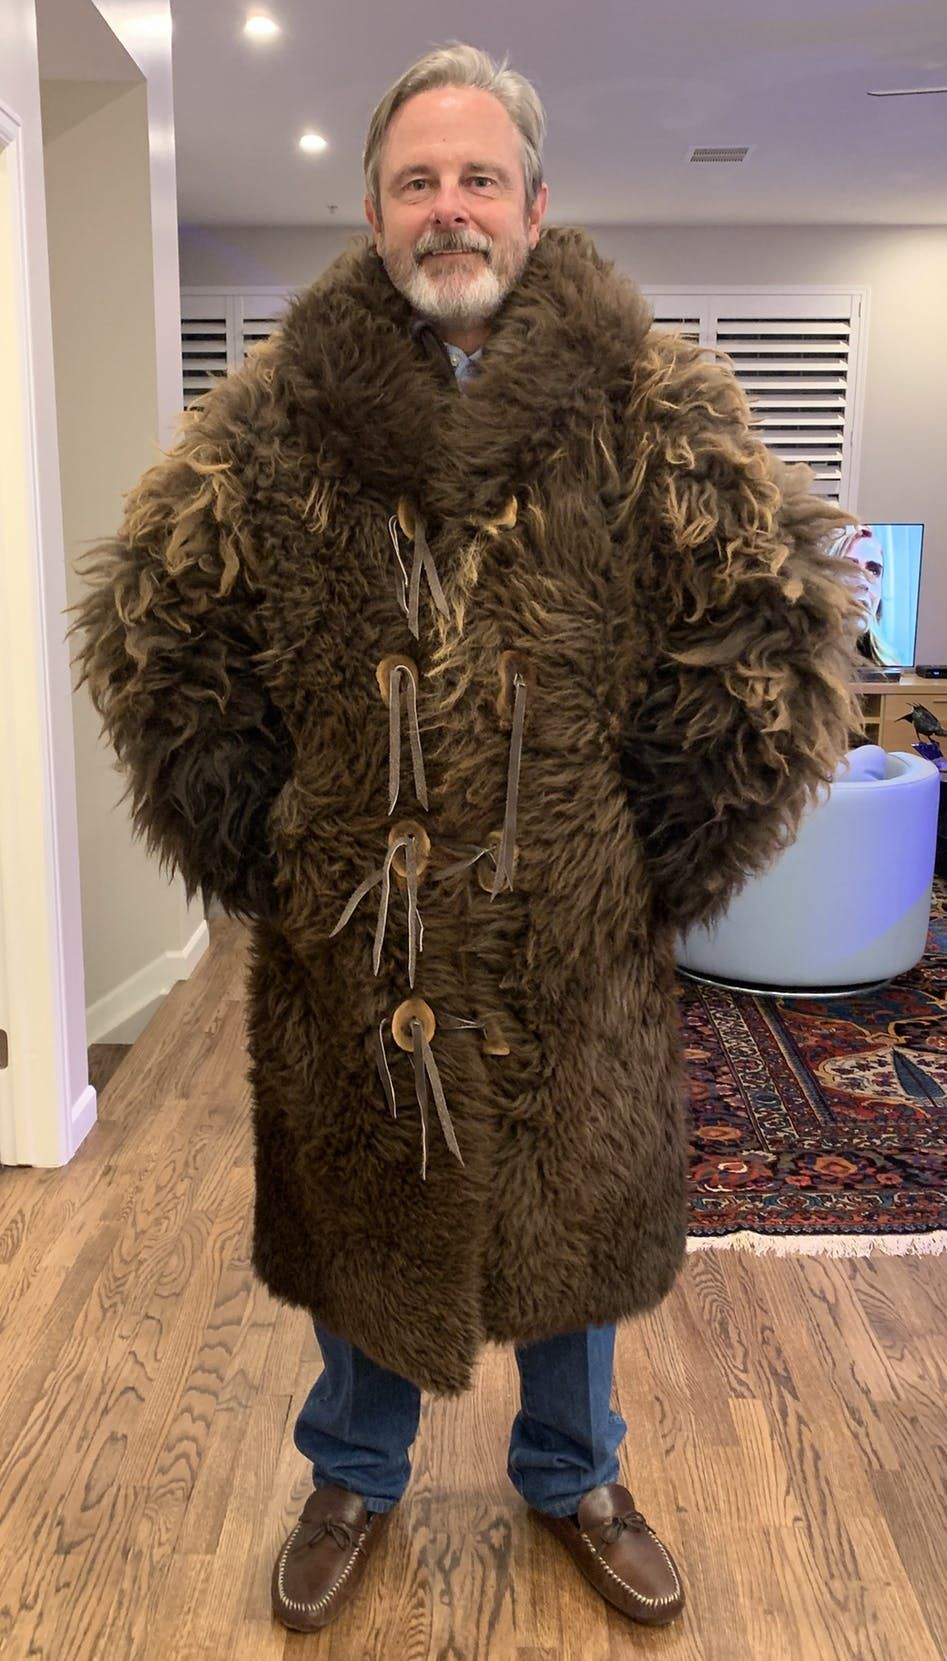 Natural Buffalo Fur Coat Full Length Custom Tailored Handmade In Usa Mens Fur Coat Fur Coat Fur Clothing